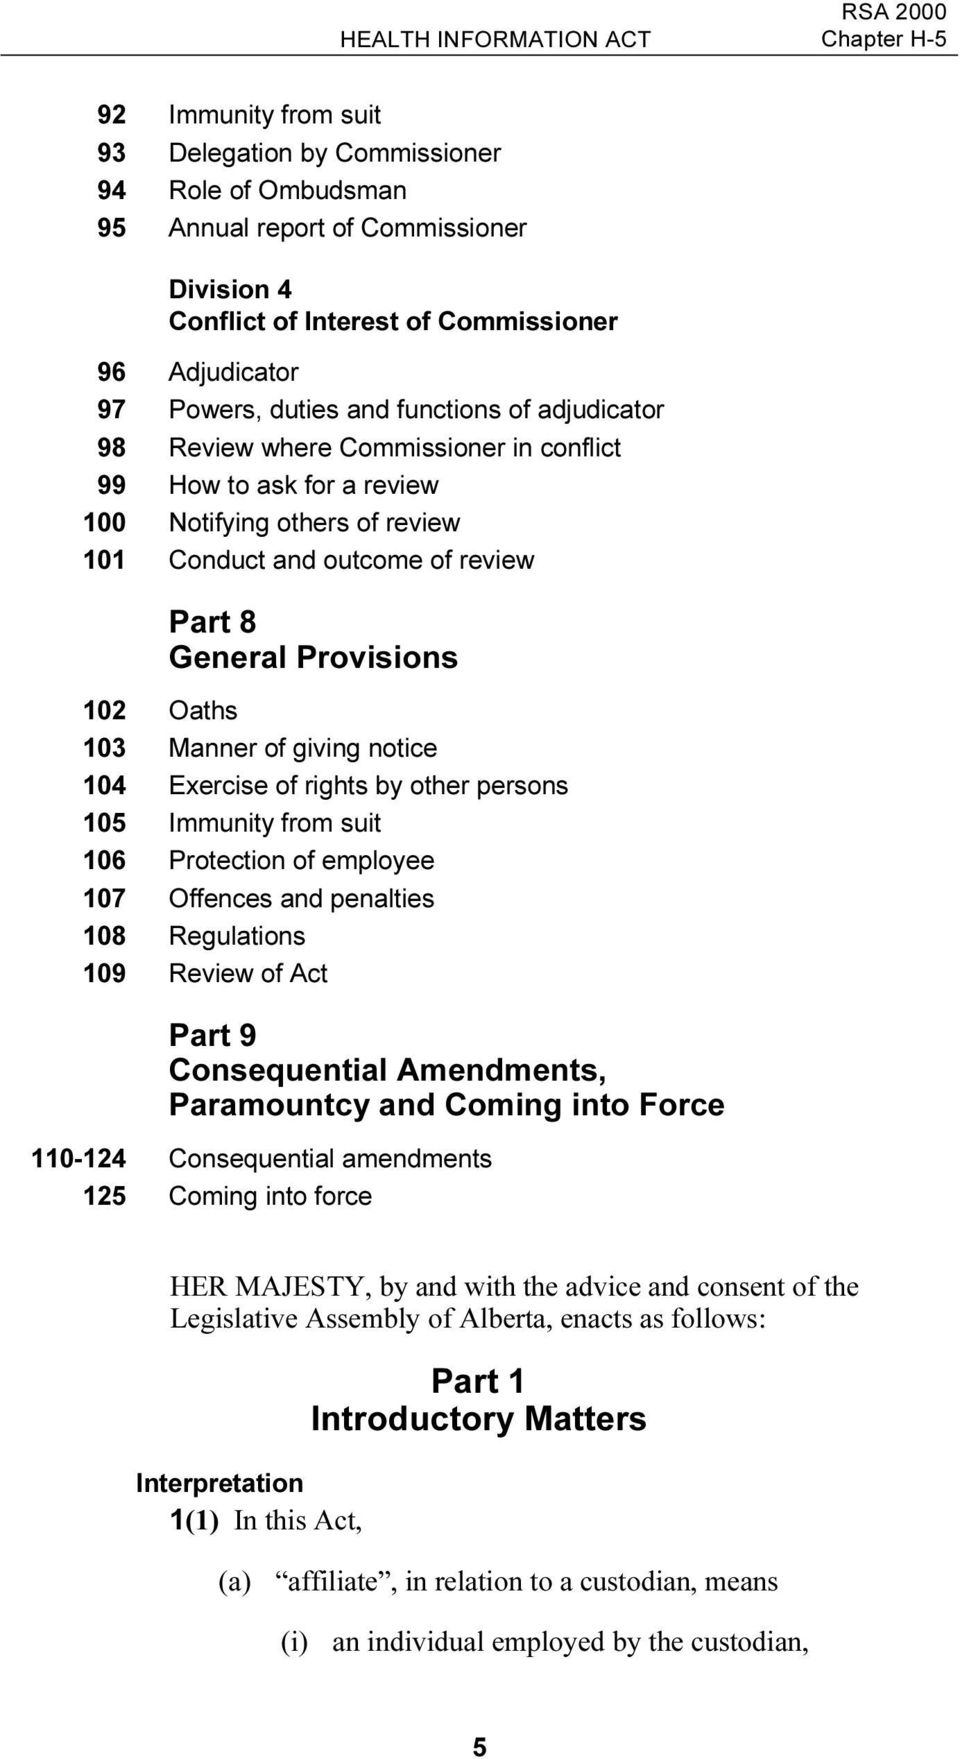 General Provisions 102 Oaths 103 Manner of giving notice 104 Exercise of rights by other persons 105 Immunity from suit 106 Protection of employee 107 Offences and penalties 108 Regulations 109